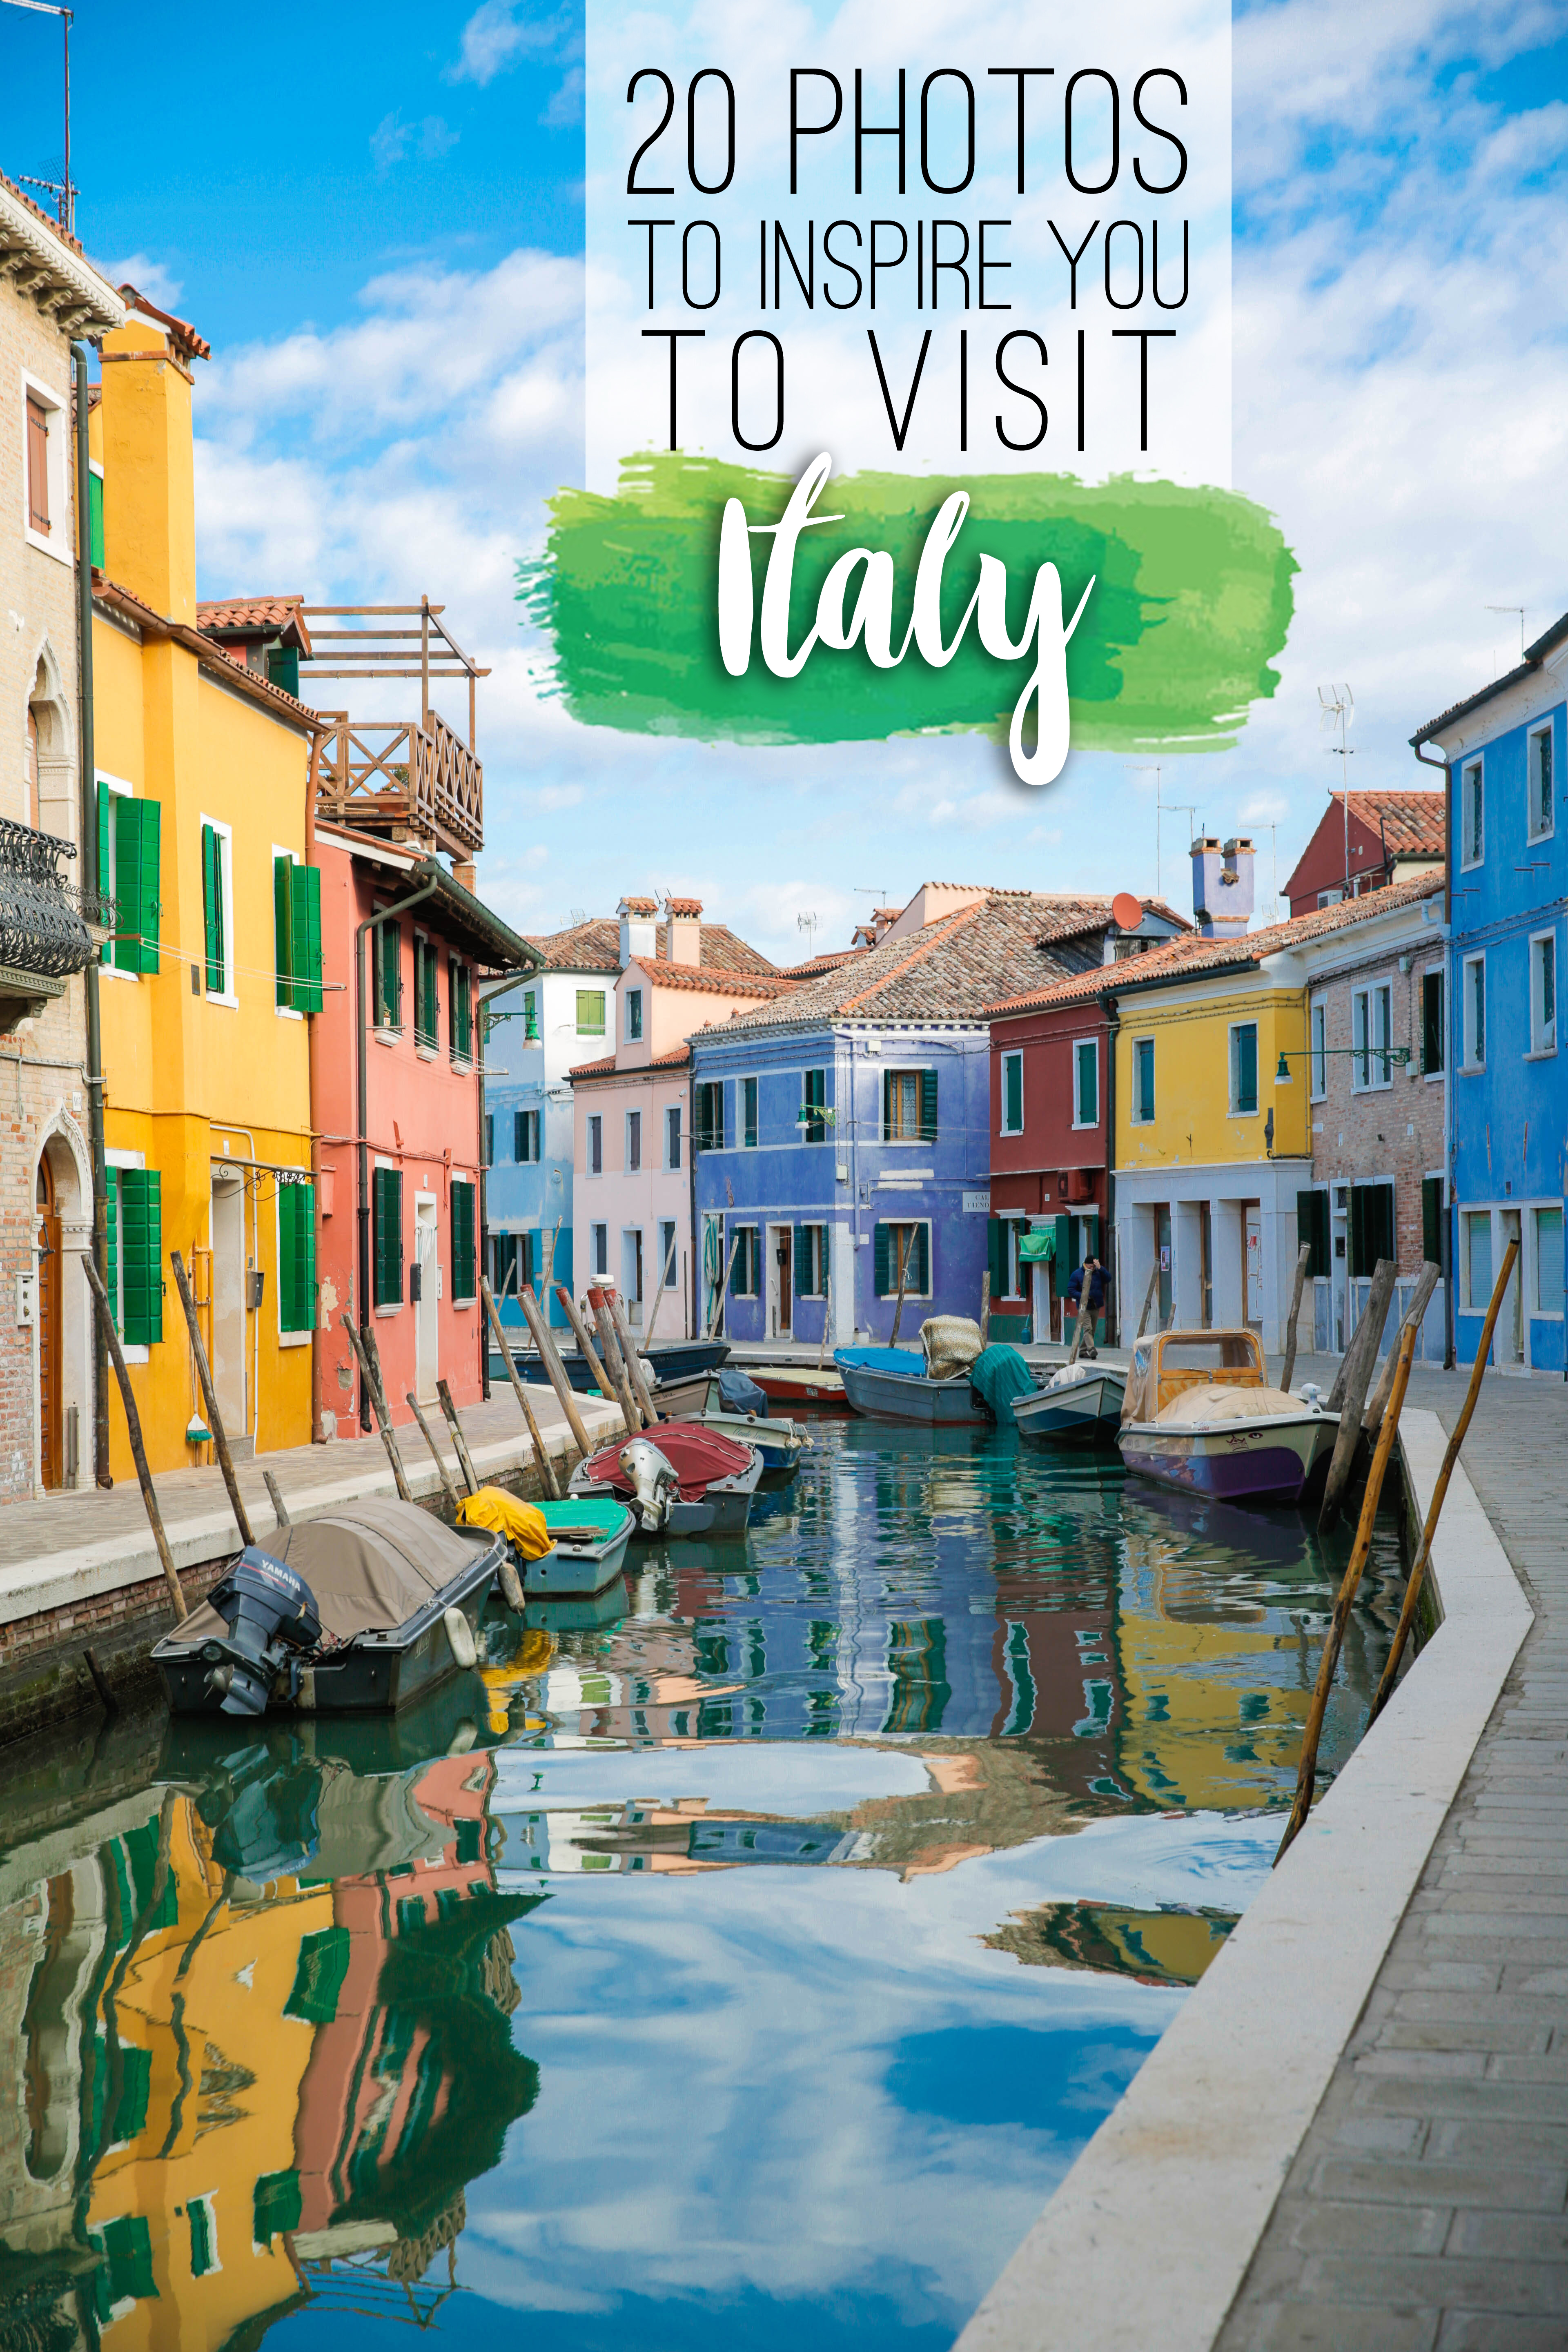 20 photos to inspire you to visit Italy